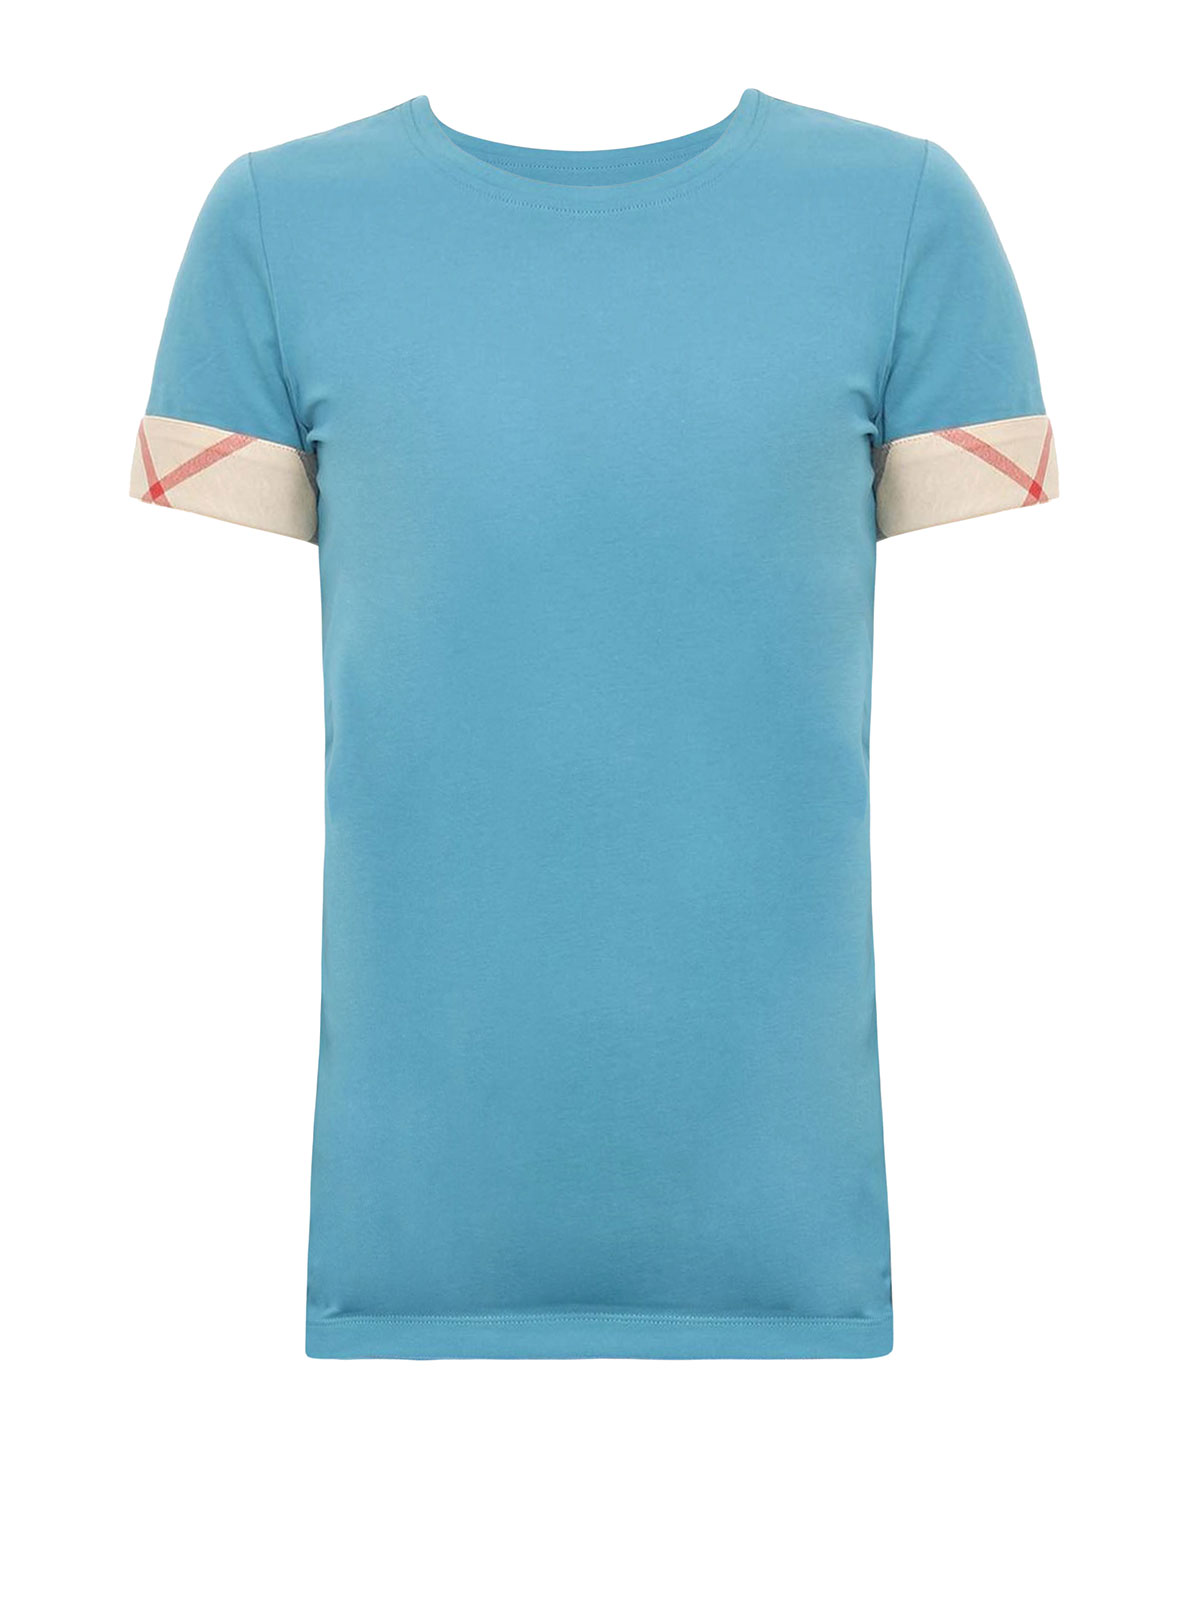 Check Shirts Online in India available at Best Price at Voonik India. Checkout variety of Check Shirts for Discount Cash on Delivery Latest Designs.